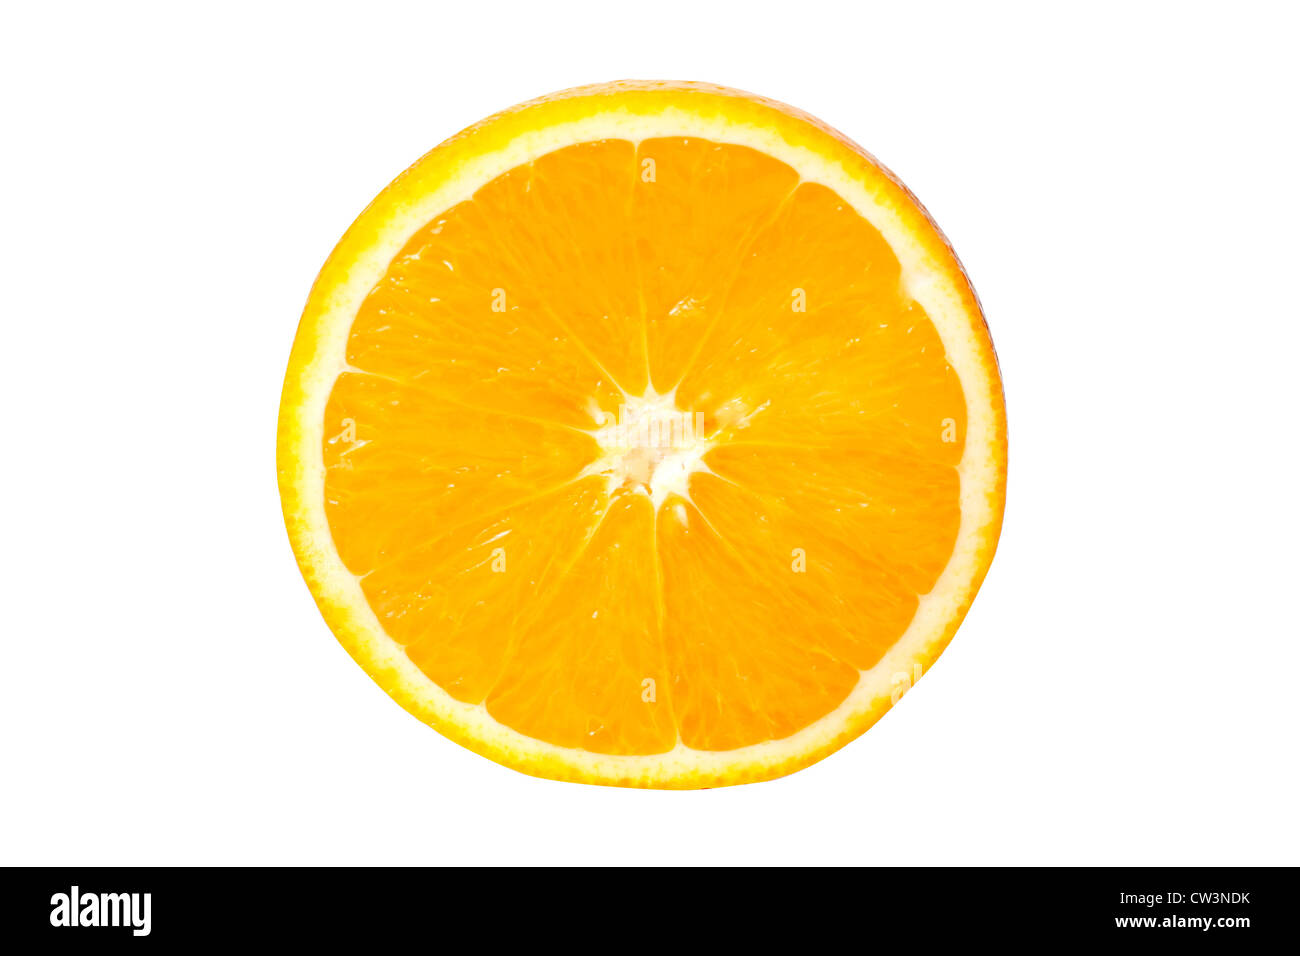 Orange slice isolated on white - Stock Image